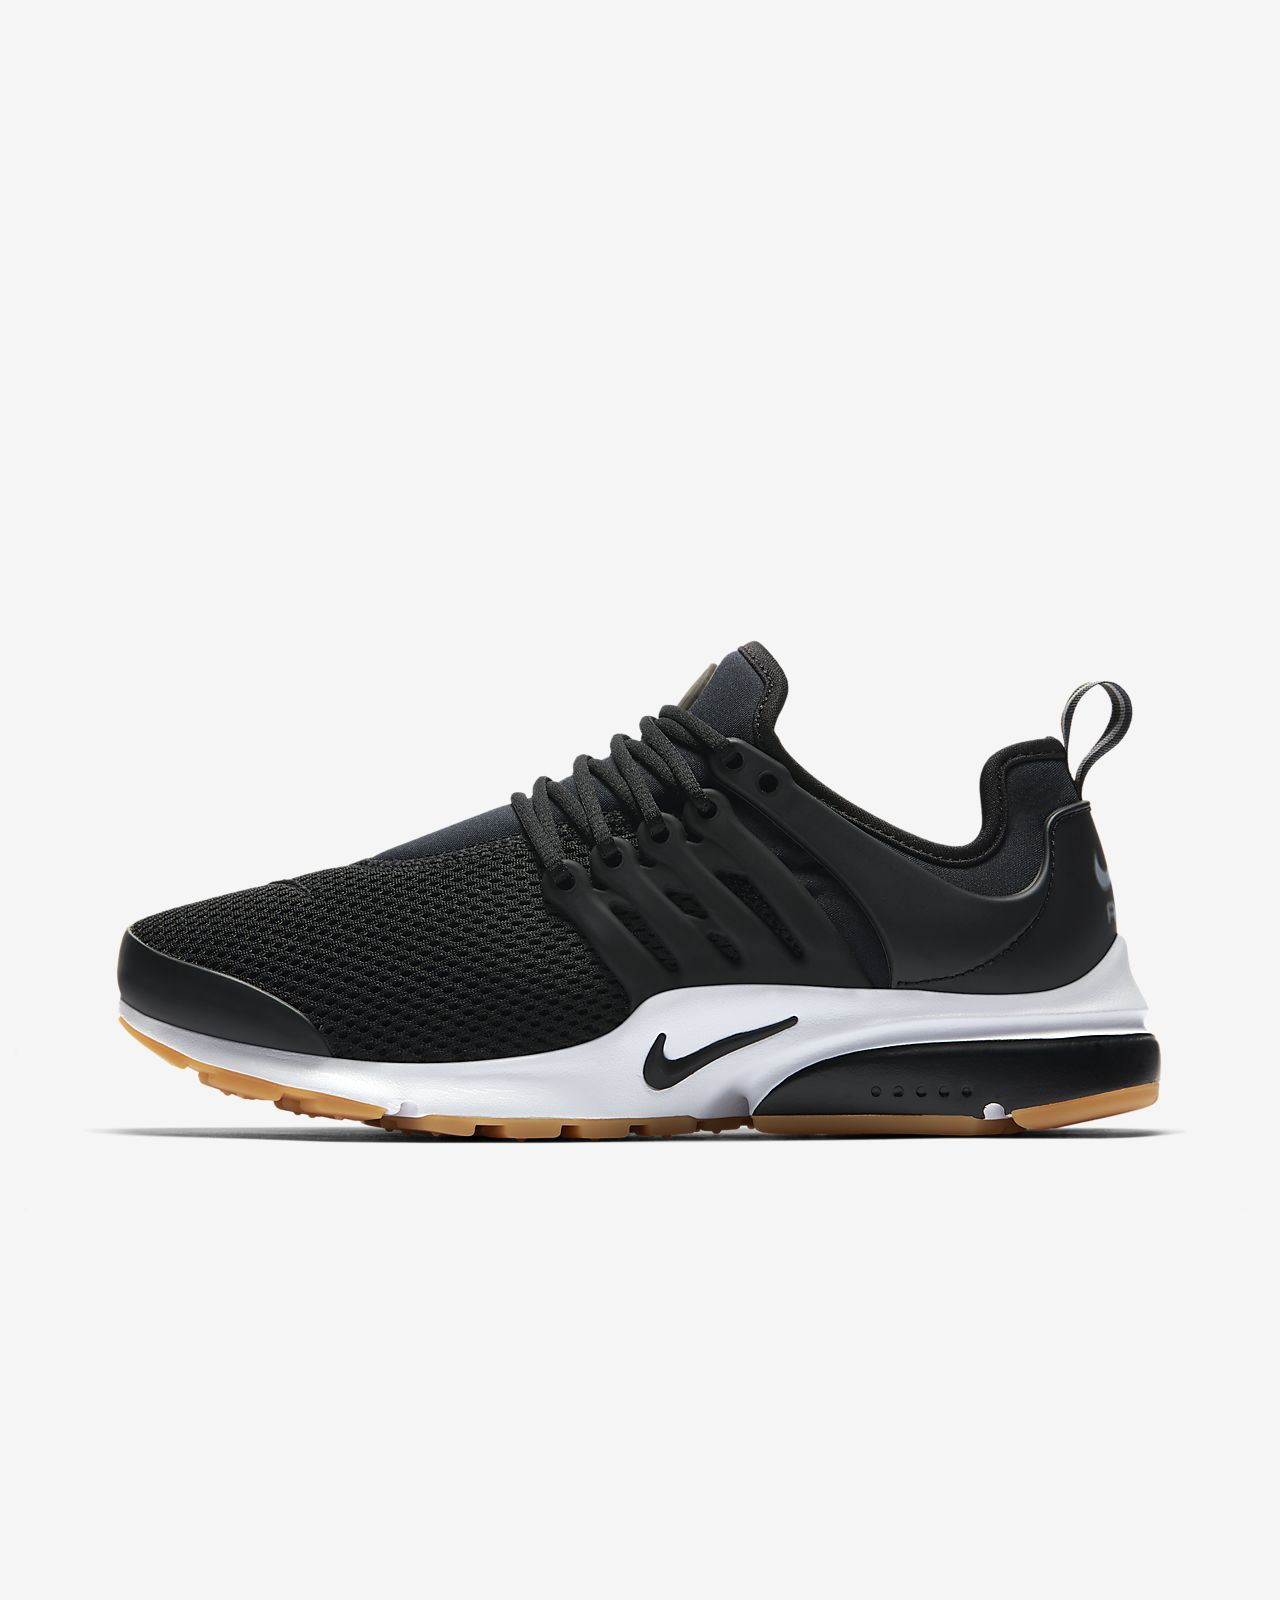 4105400a09f1 Nike Air Presto Women s Shoe. Nike.com